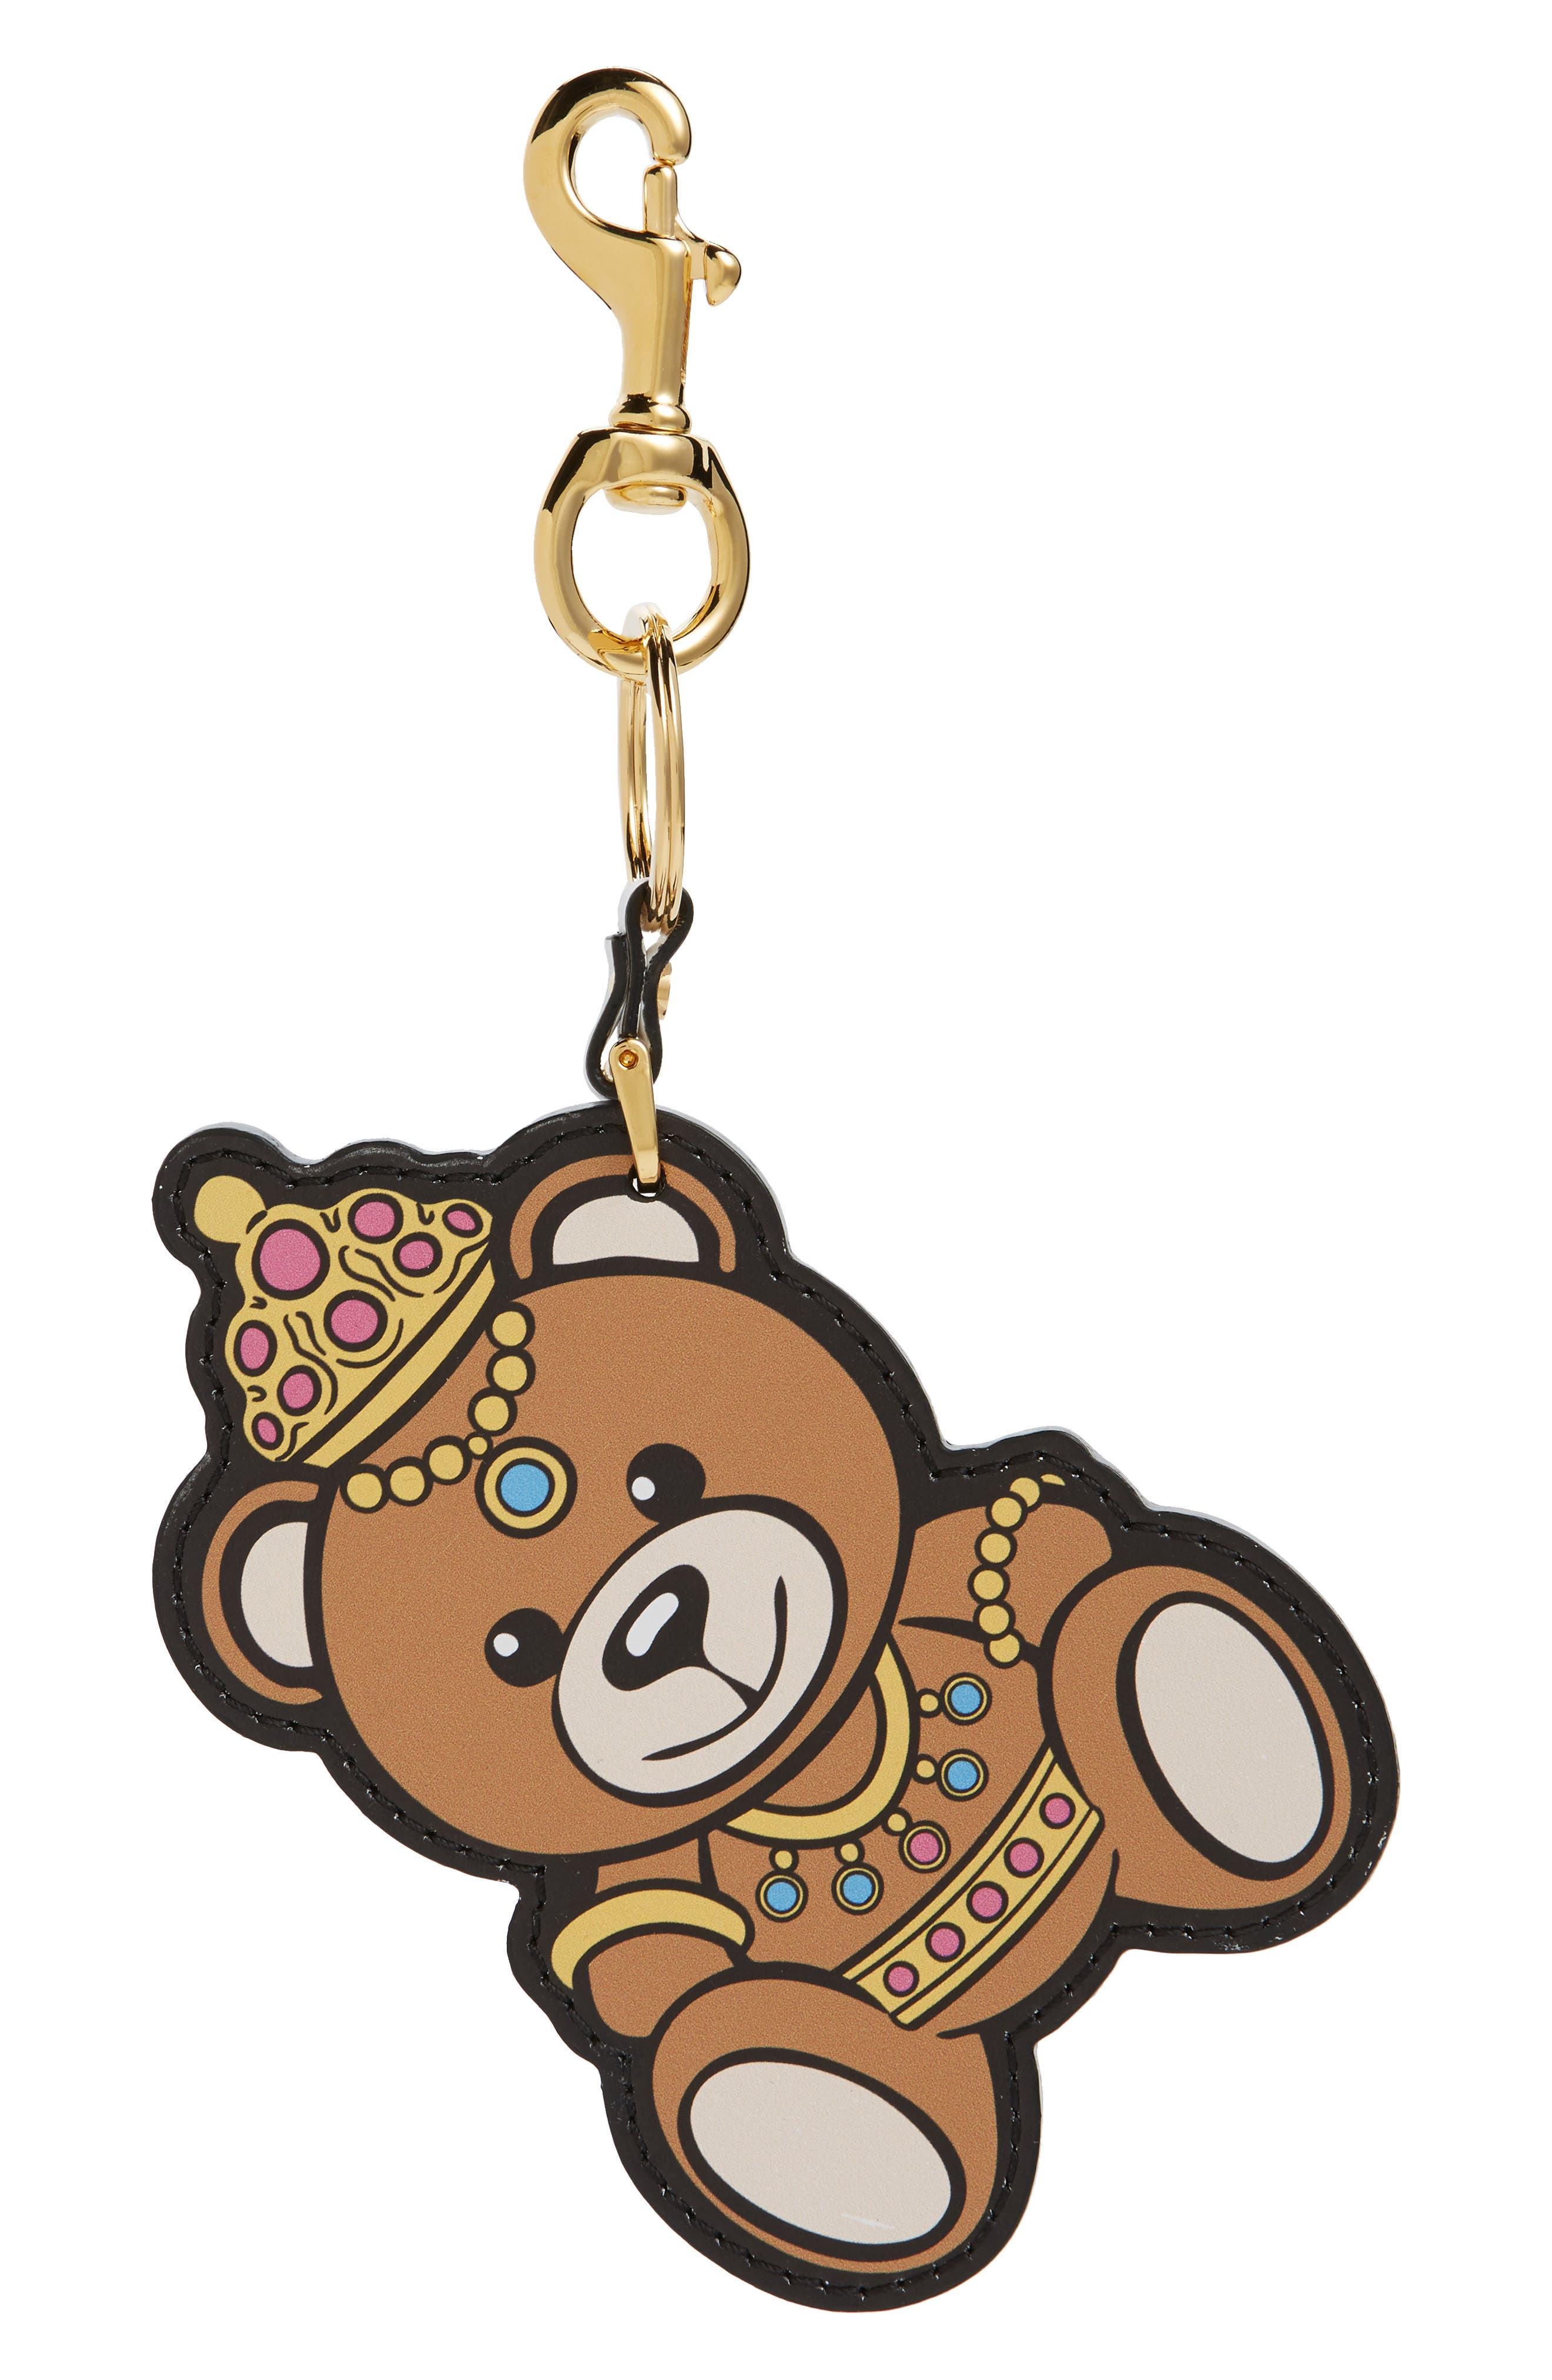 Alternate Image 1 Selected - Moschino Teddy Bear Bag Charm